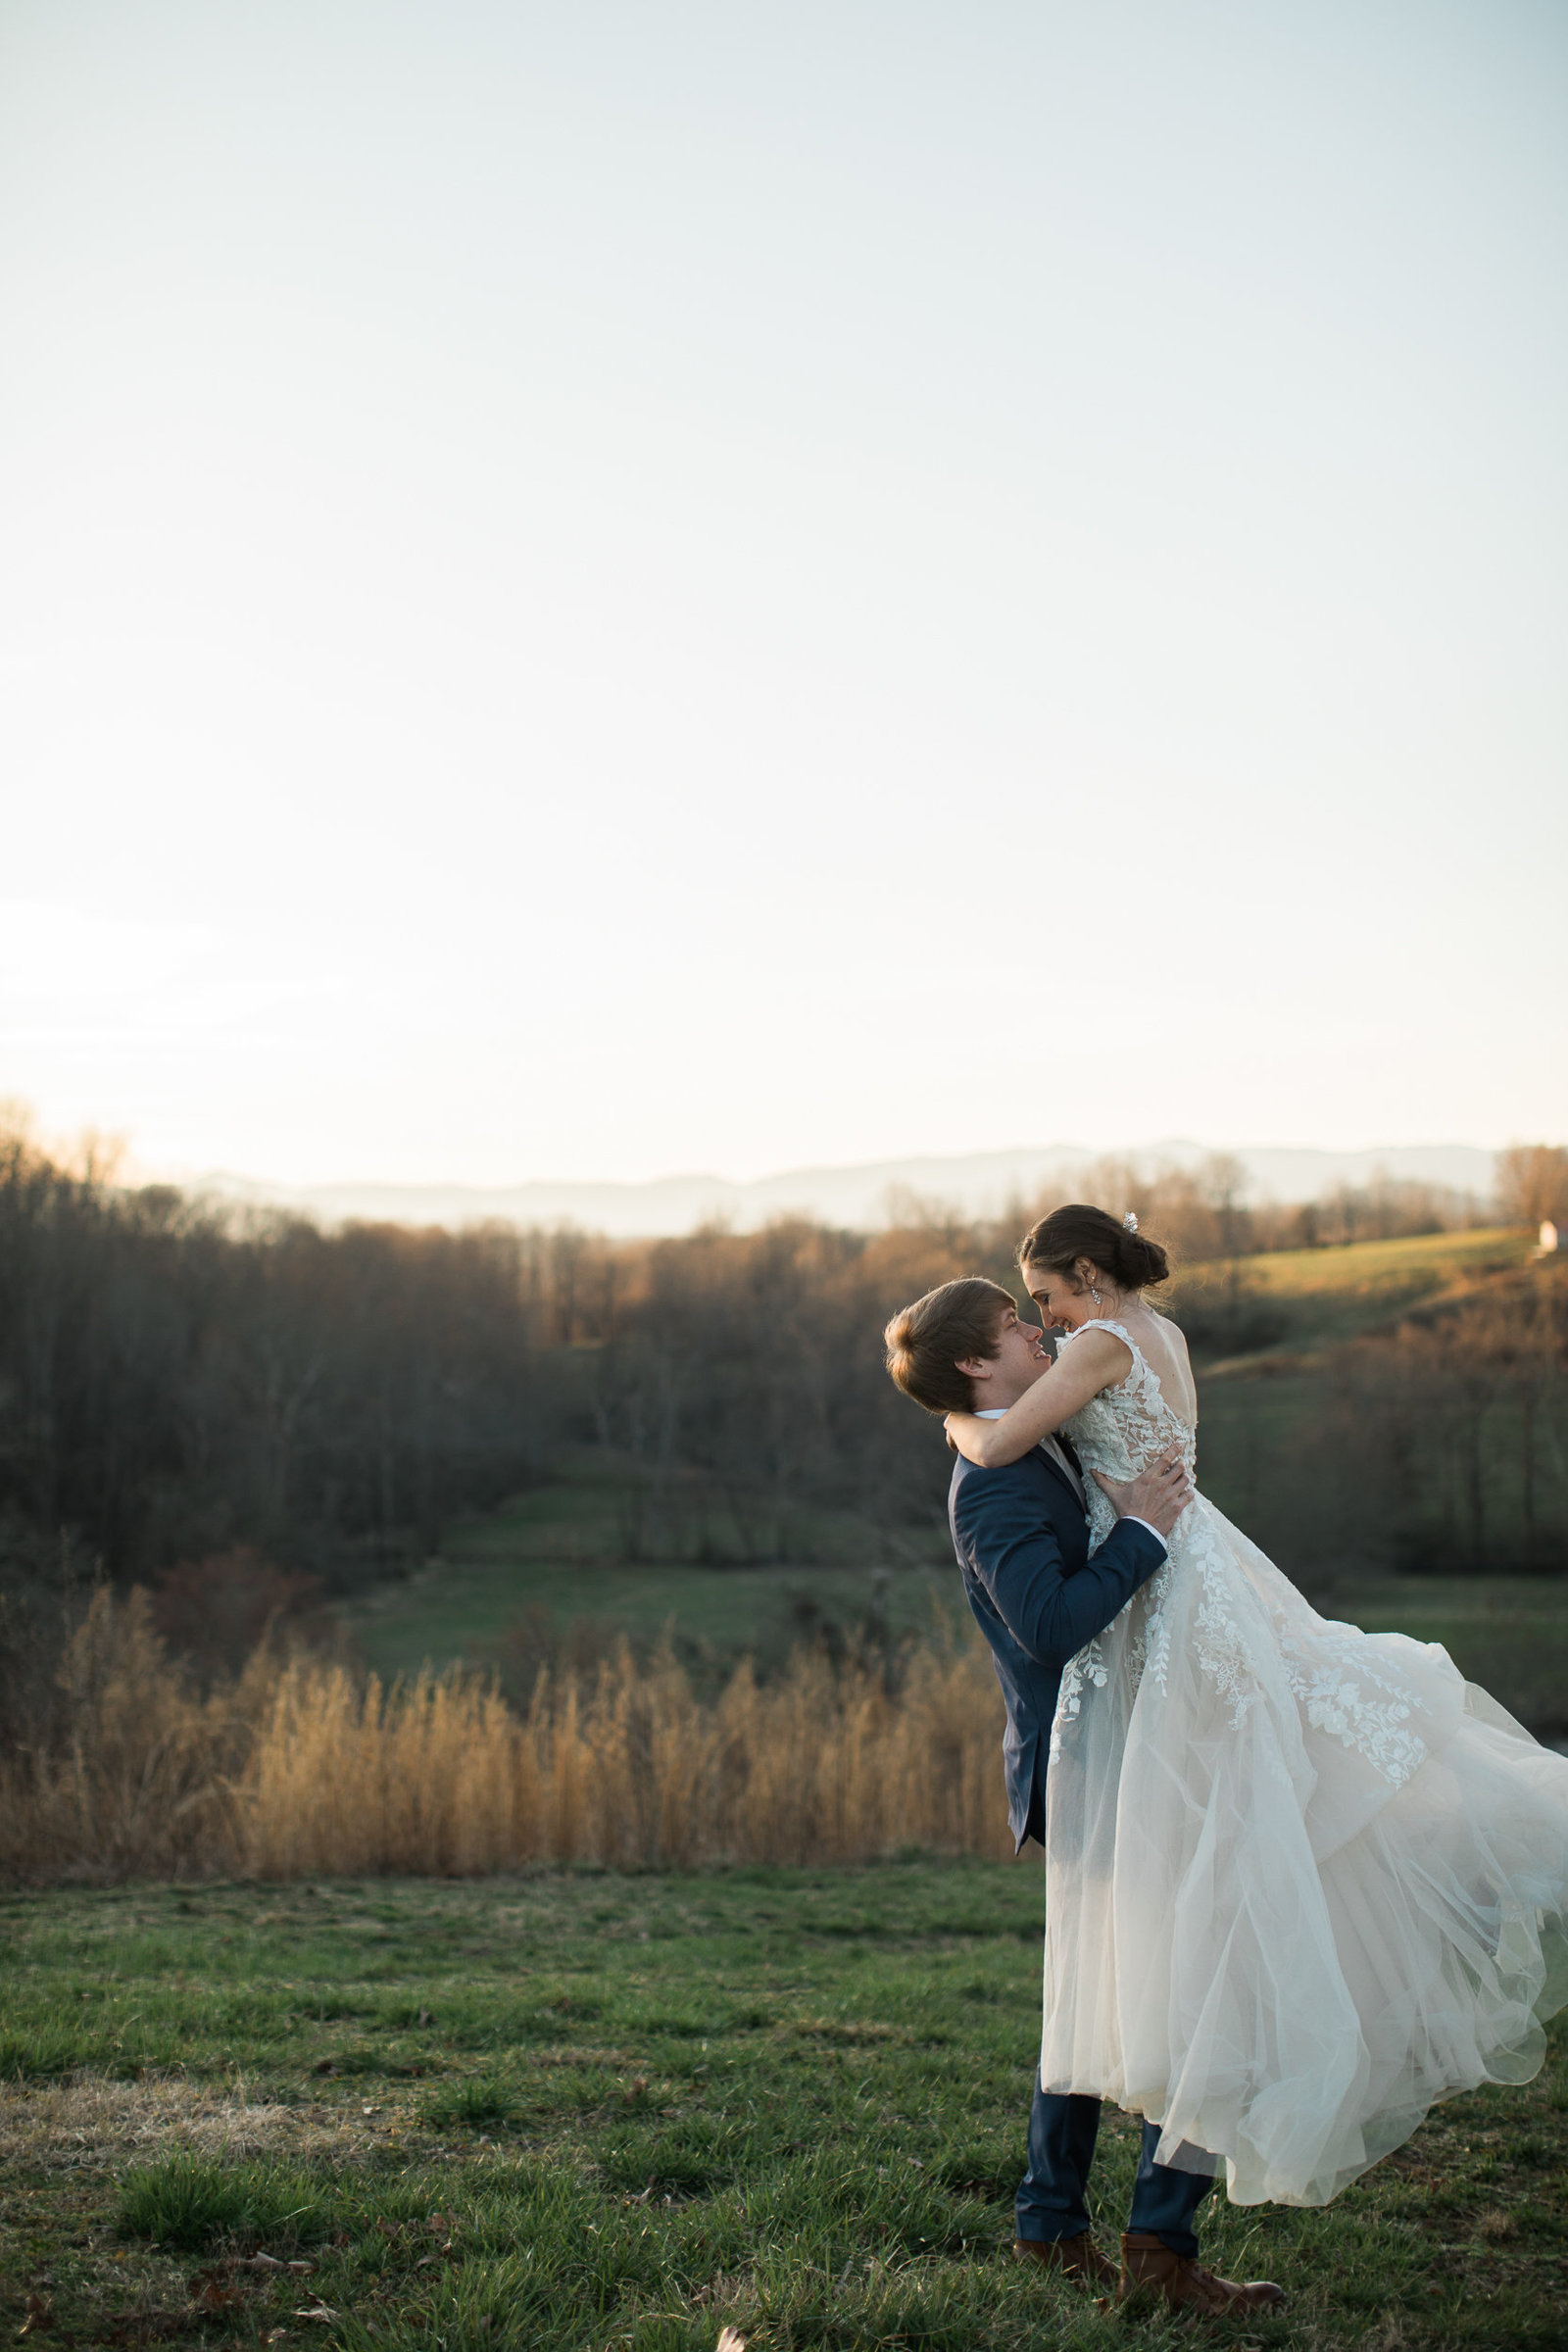 Hunter + Kaitlyn - BLOG (250 of 321)